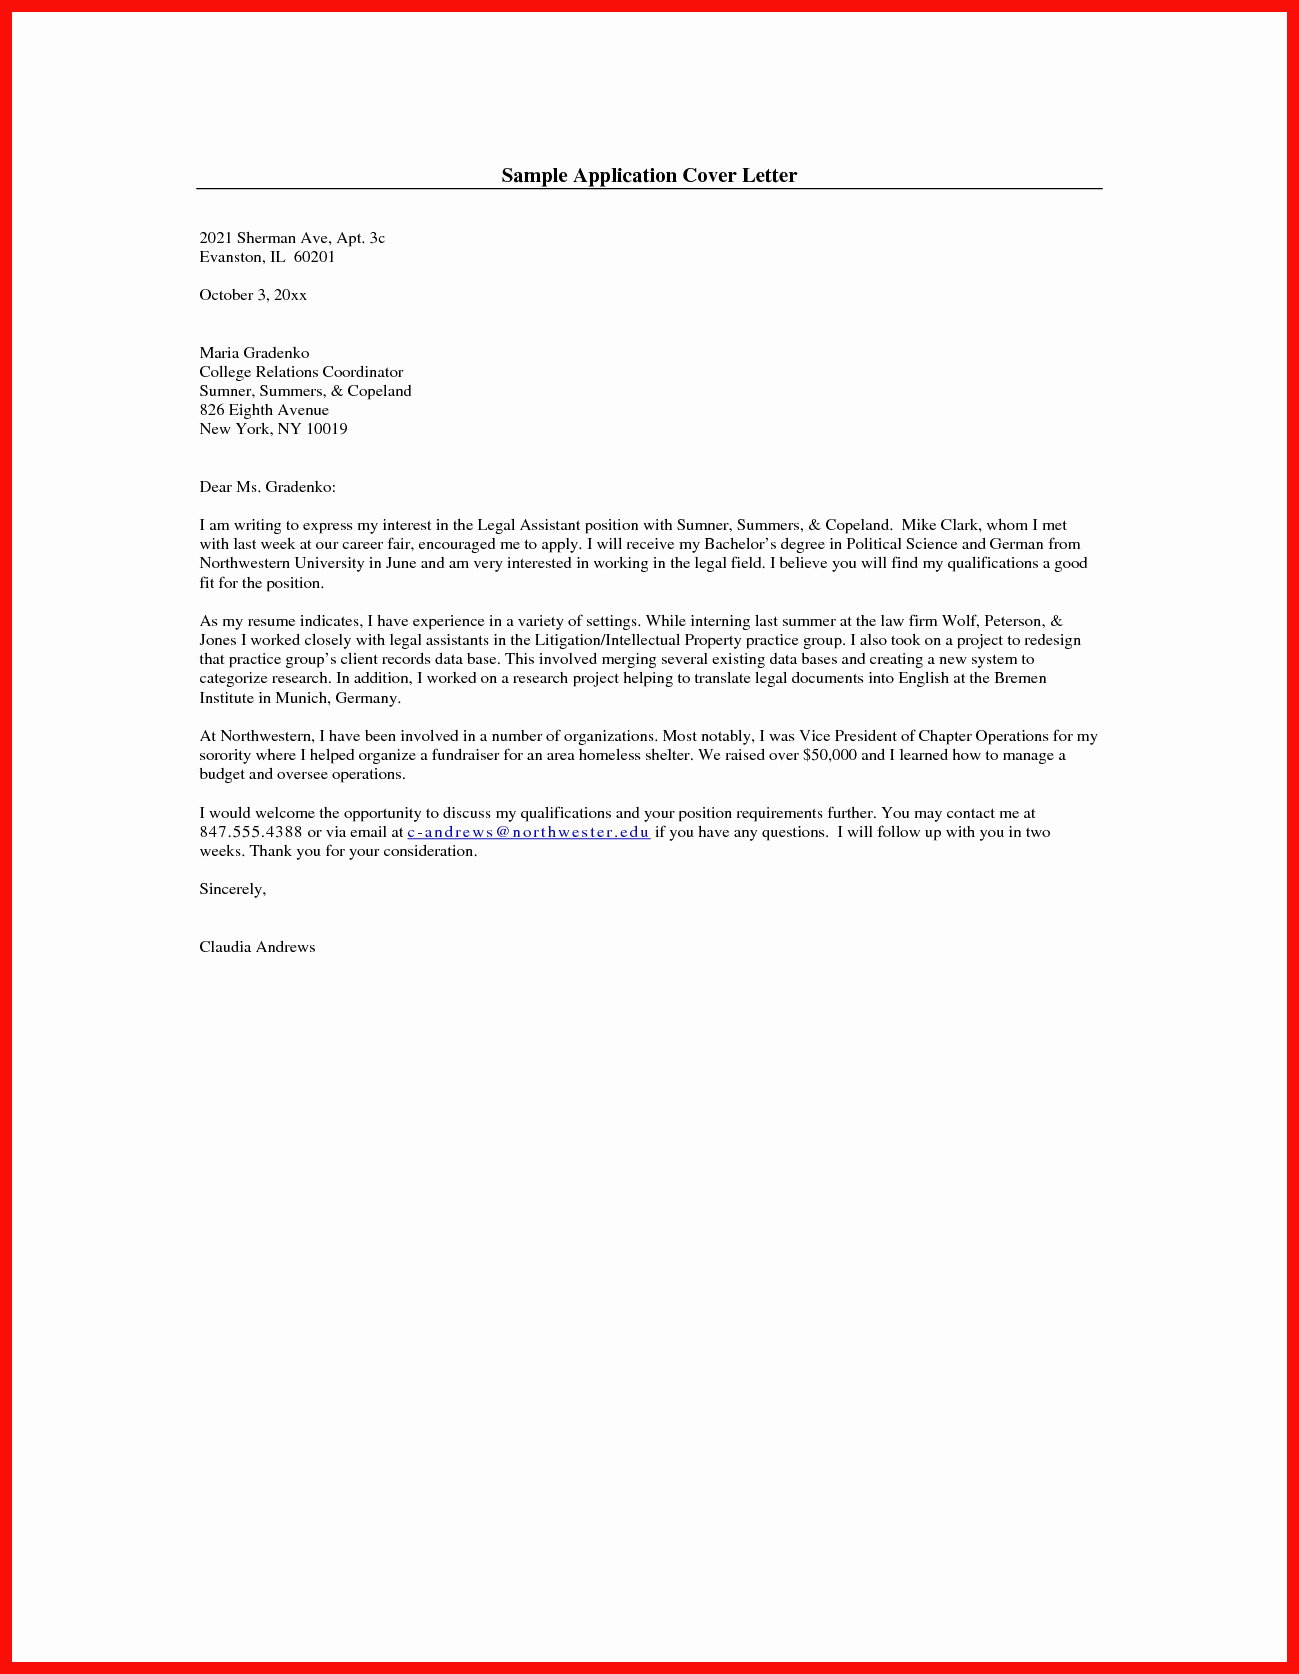 Emailed Cover Letter format Fresh Apa Cover Letter Template